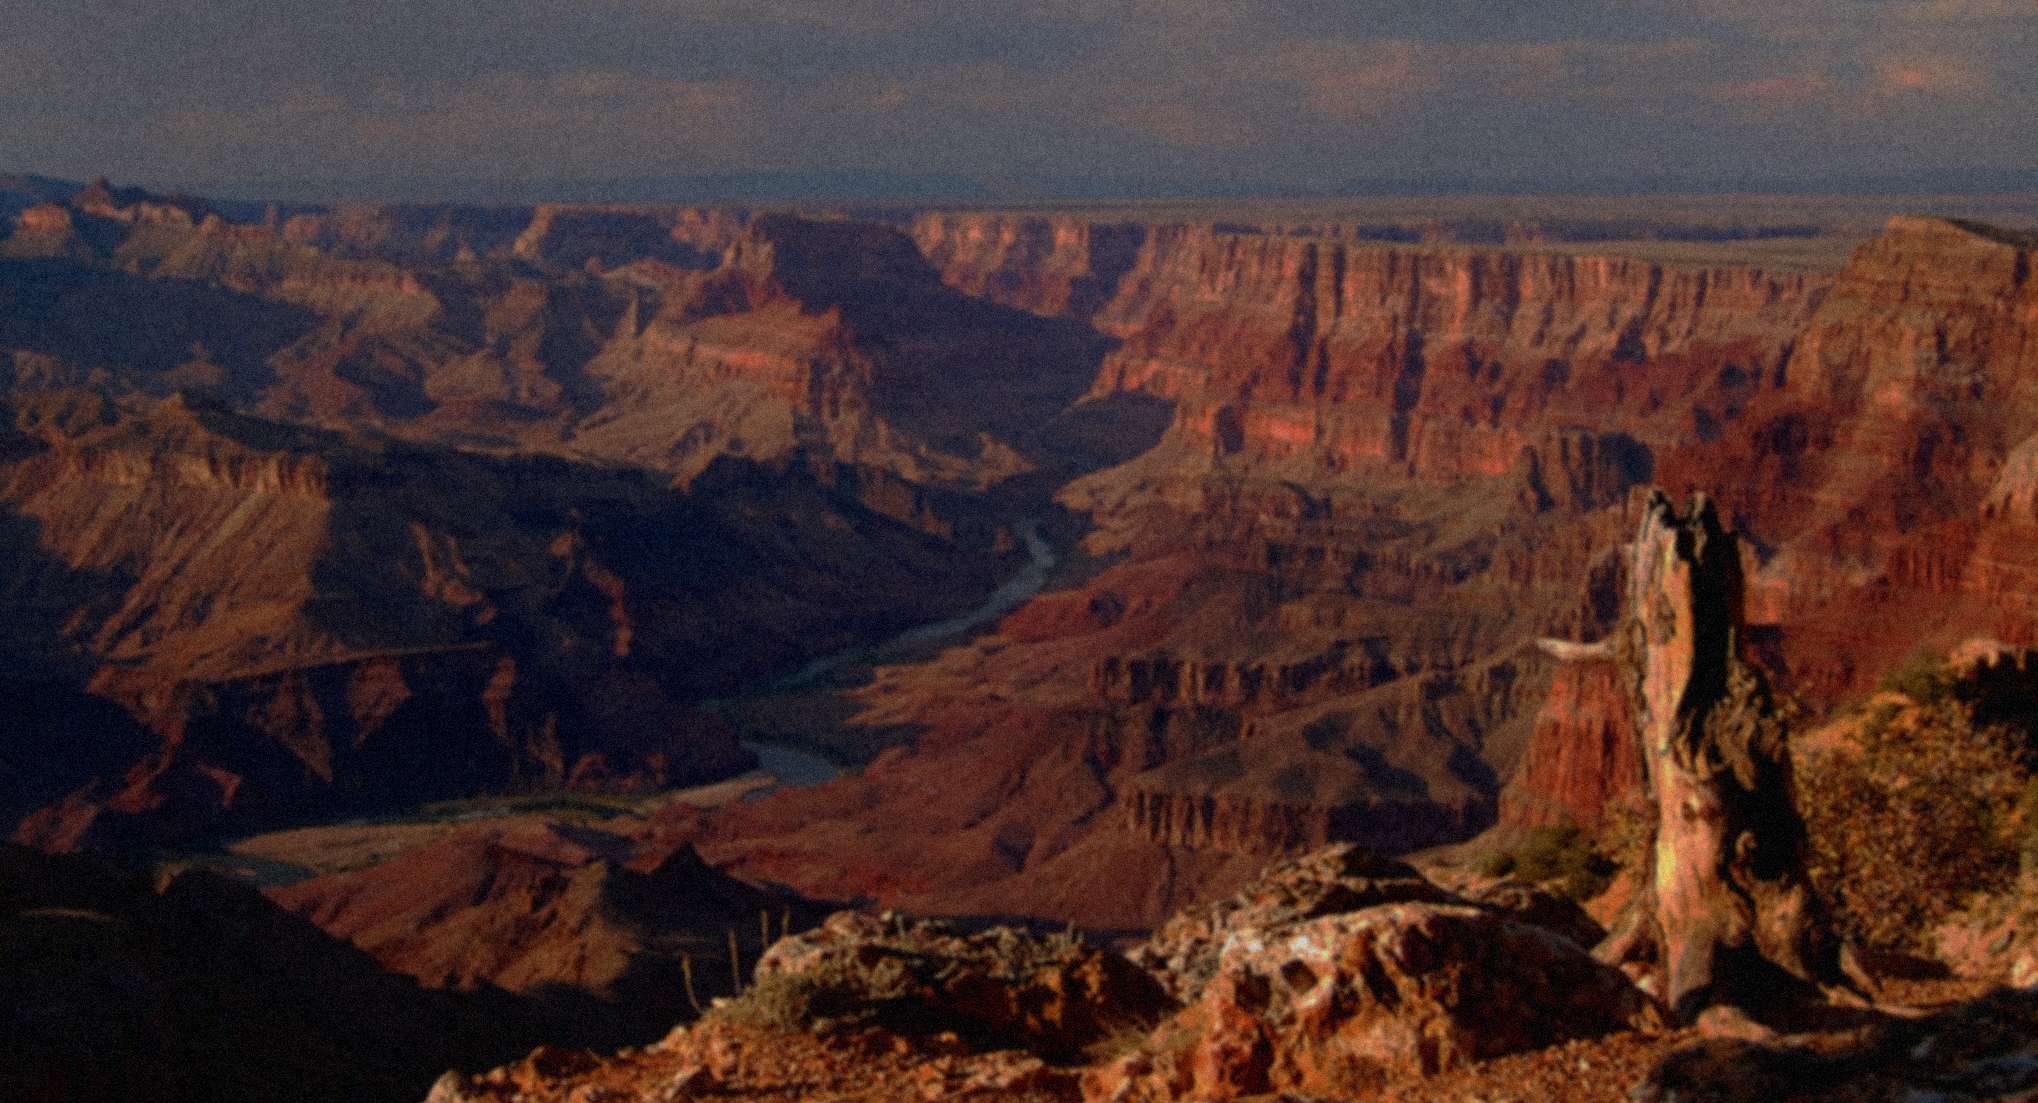 Photograph of the Grand Canyon, with a tree stump in the foreground